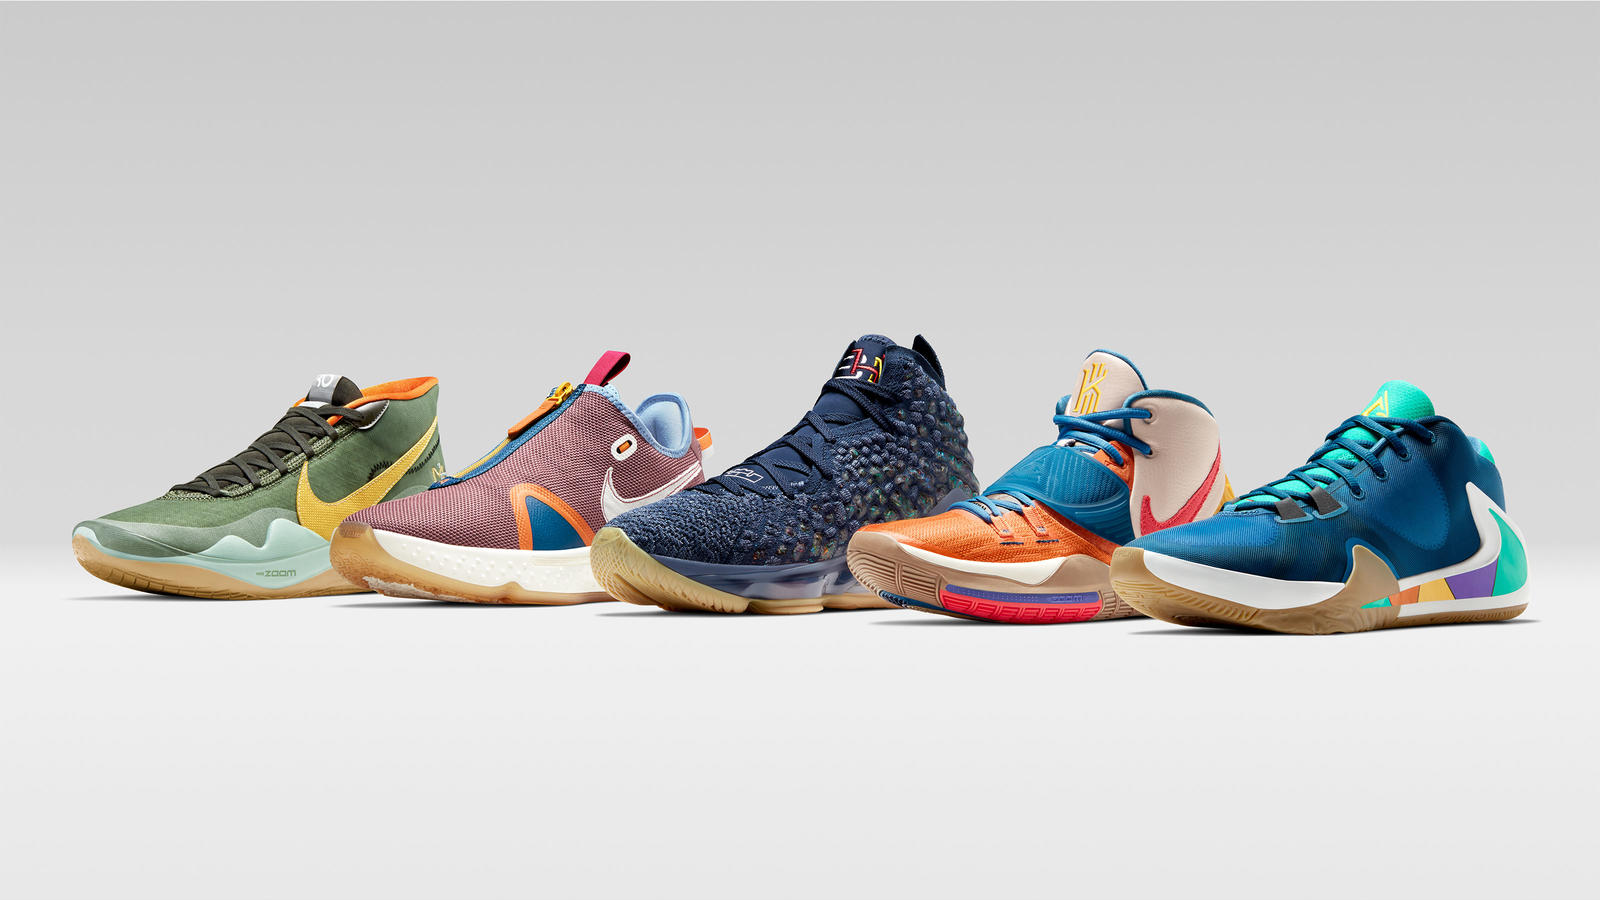 black-history-month-2020-nike-basketball-lebron-17-kyrie-6-kd12-pg4-zoom-freak-1-official-images